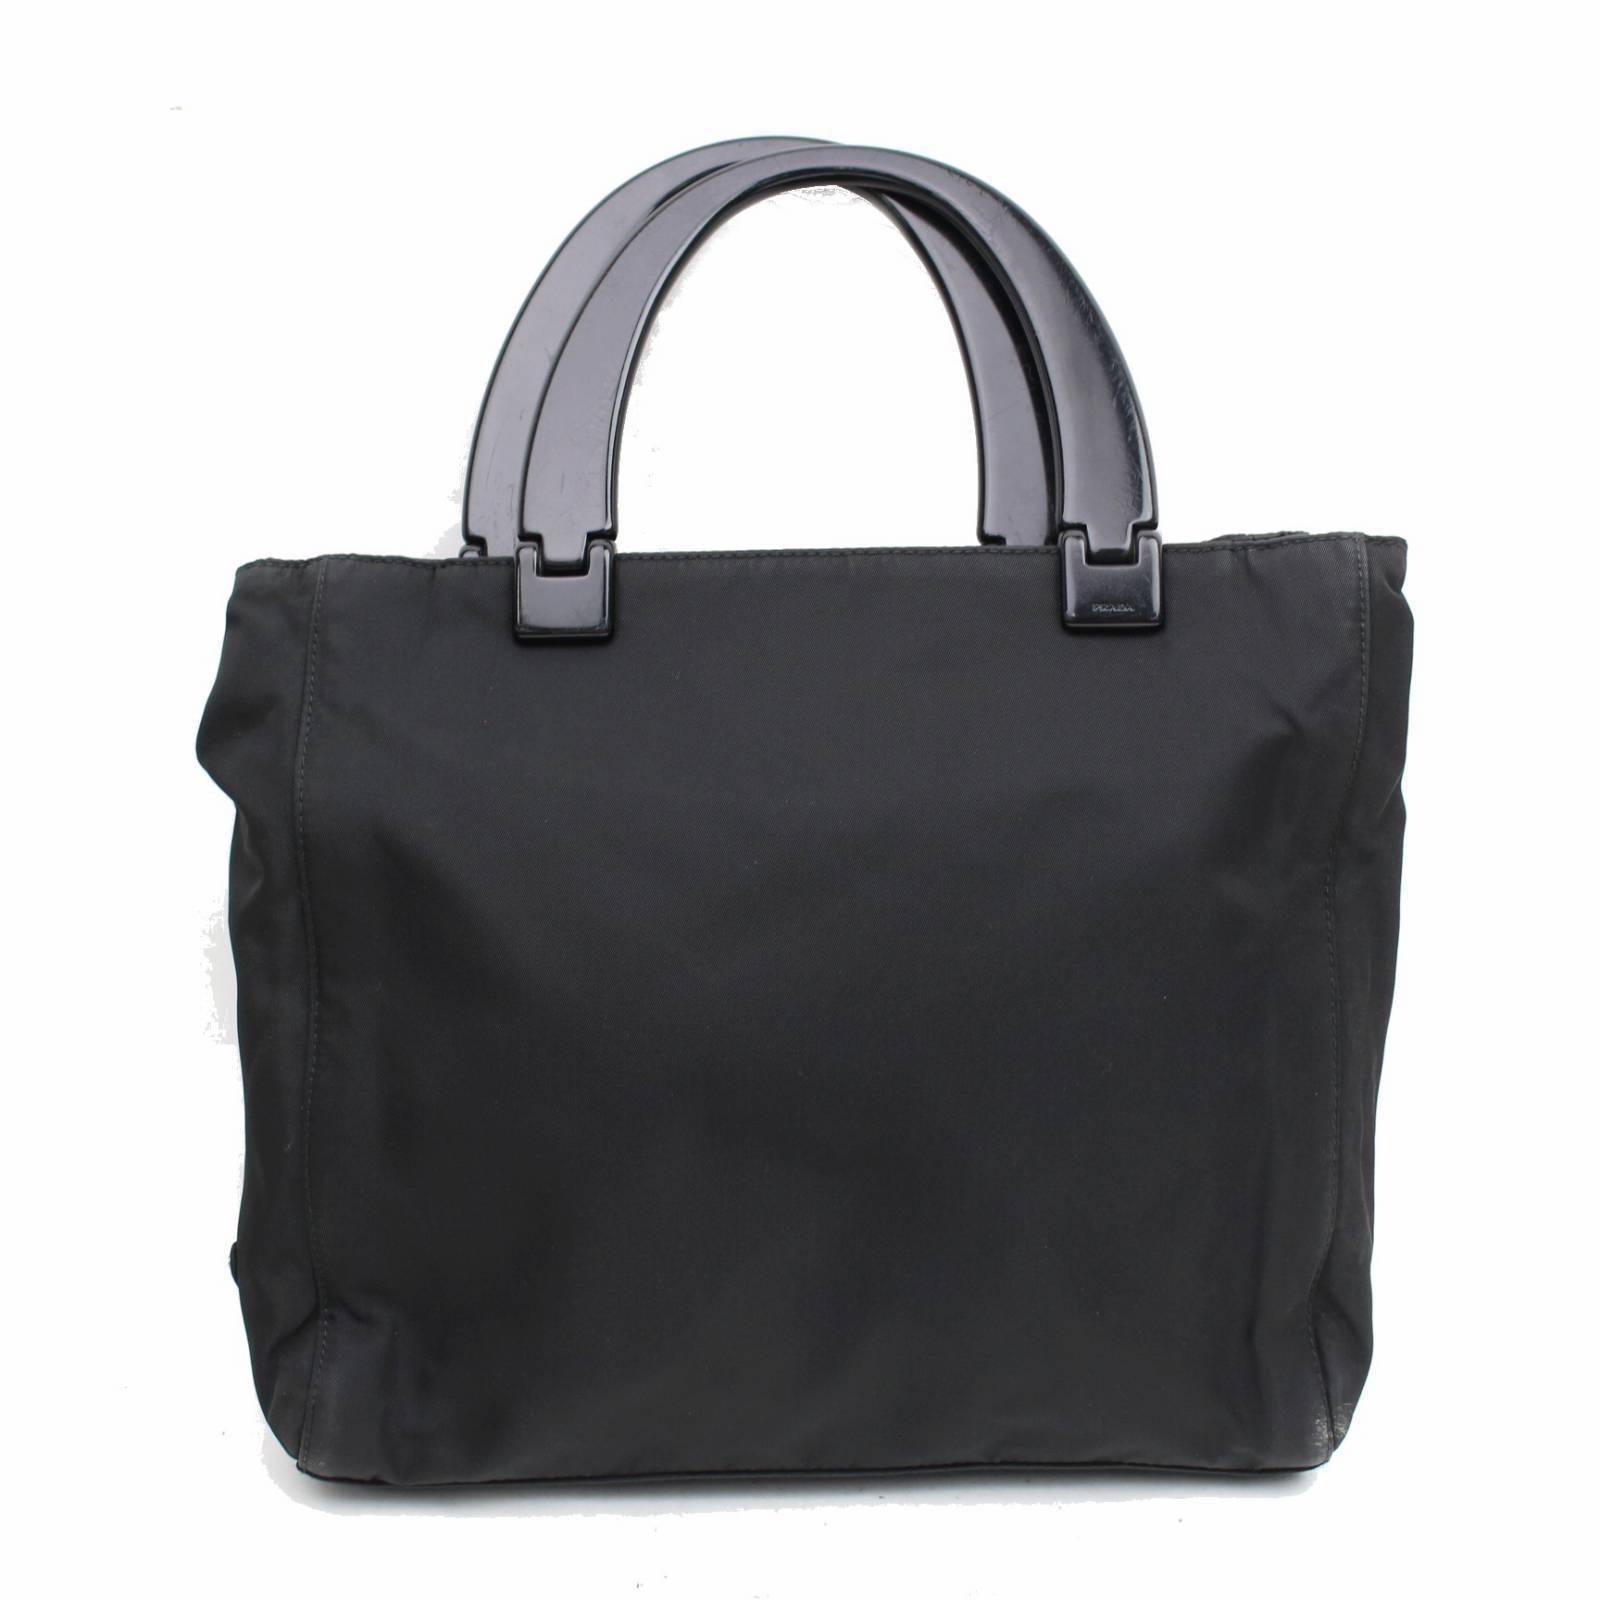 ef7232c7c1a1 ... uk prada tessuto vela nero luxe shopper tote in black 6c865 93e28